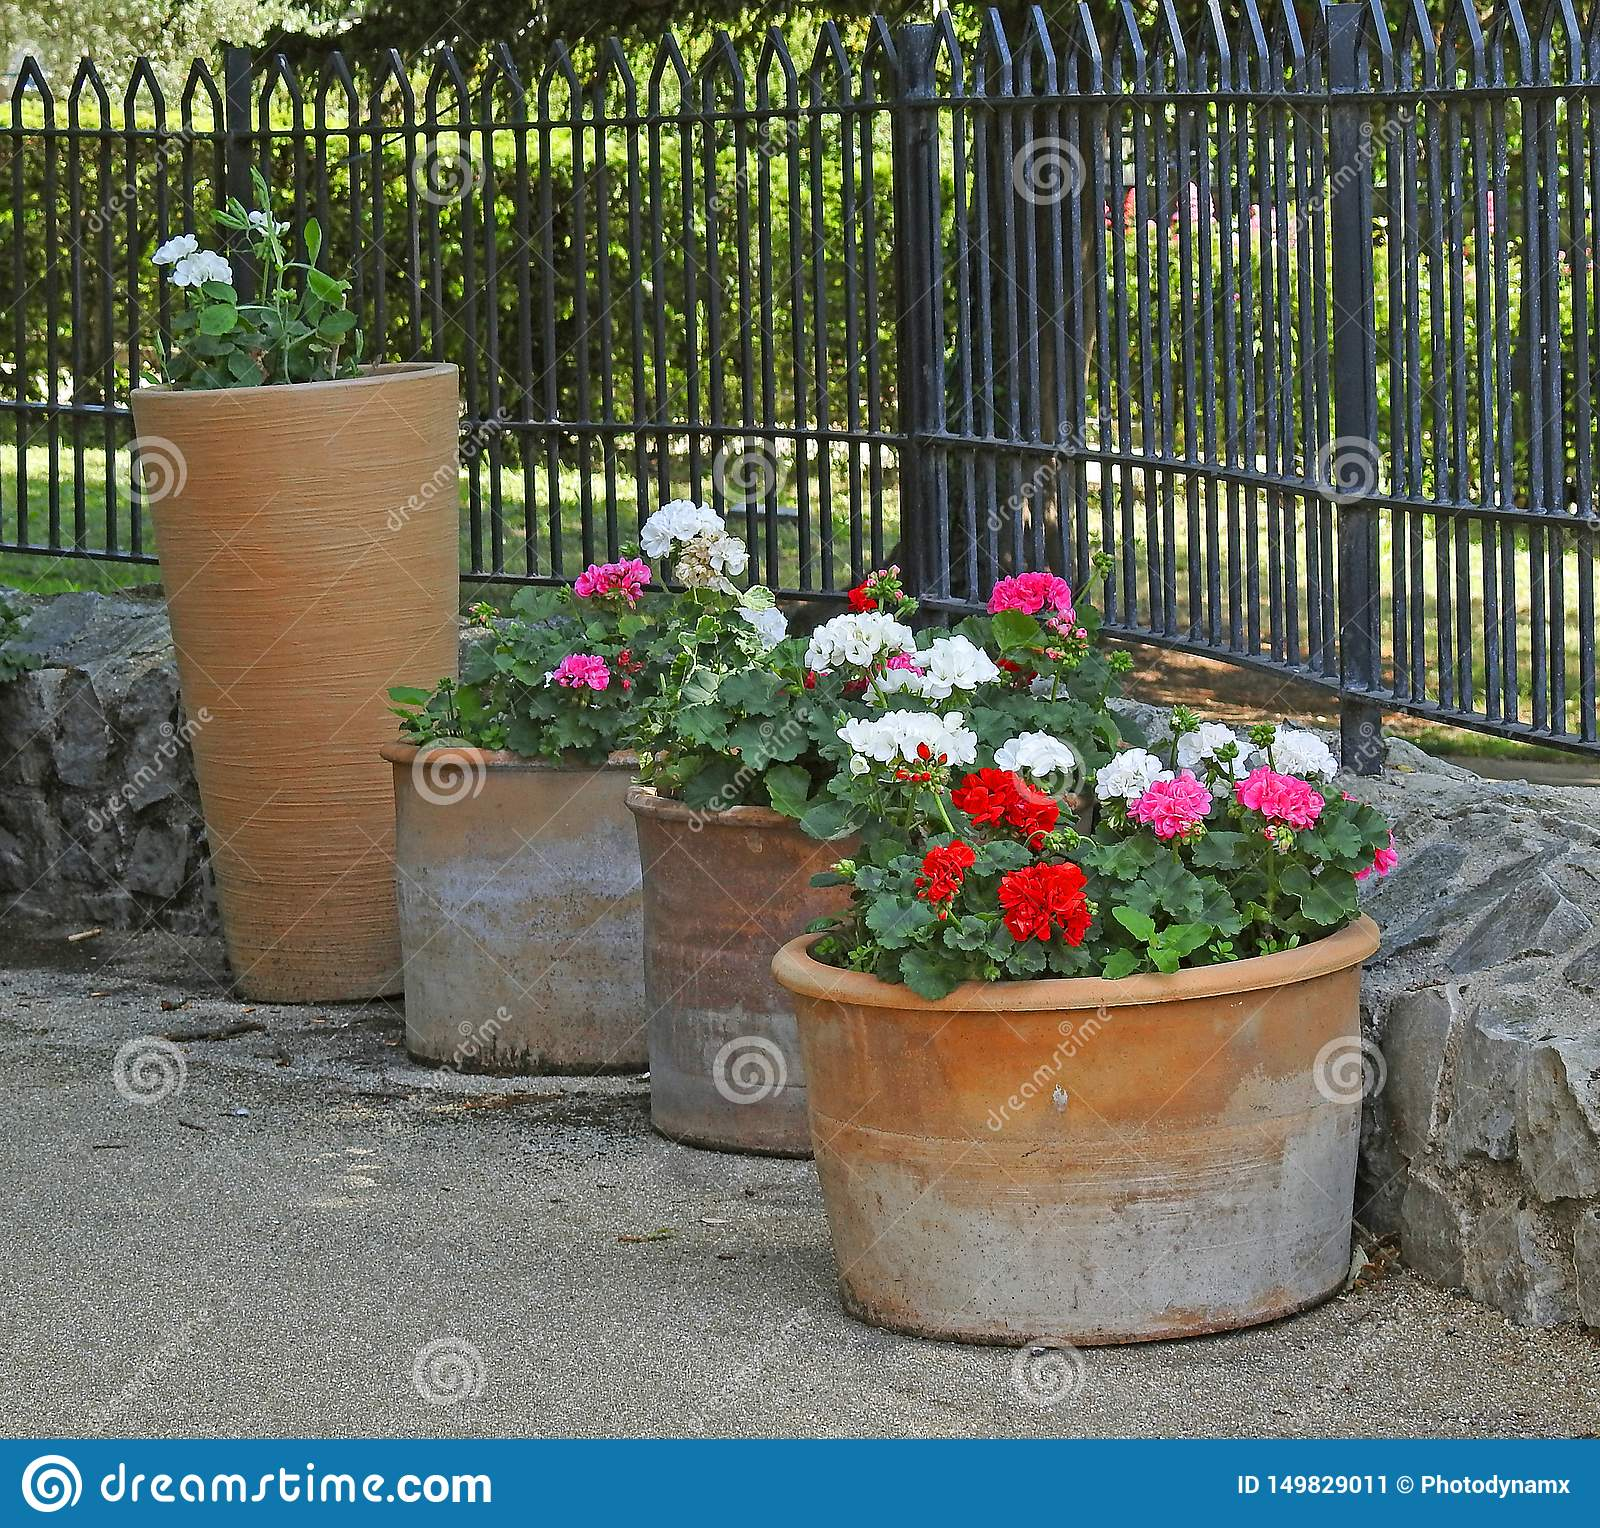 Potted Plants Flowers Tall Small Garden Path Summer Stock Image